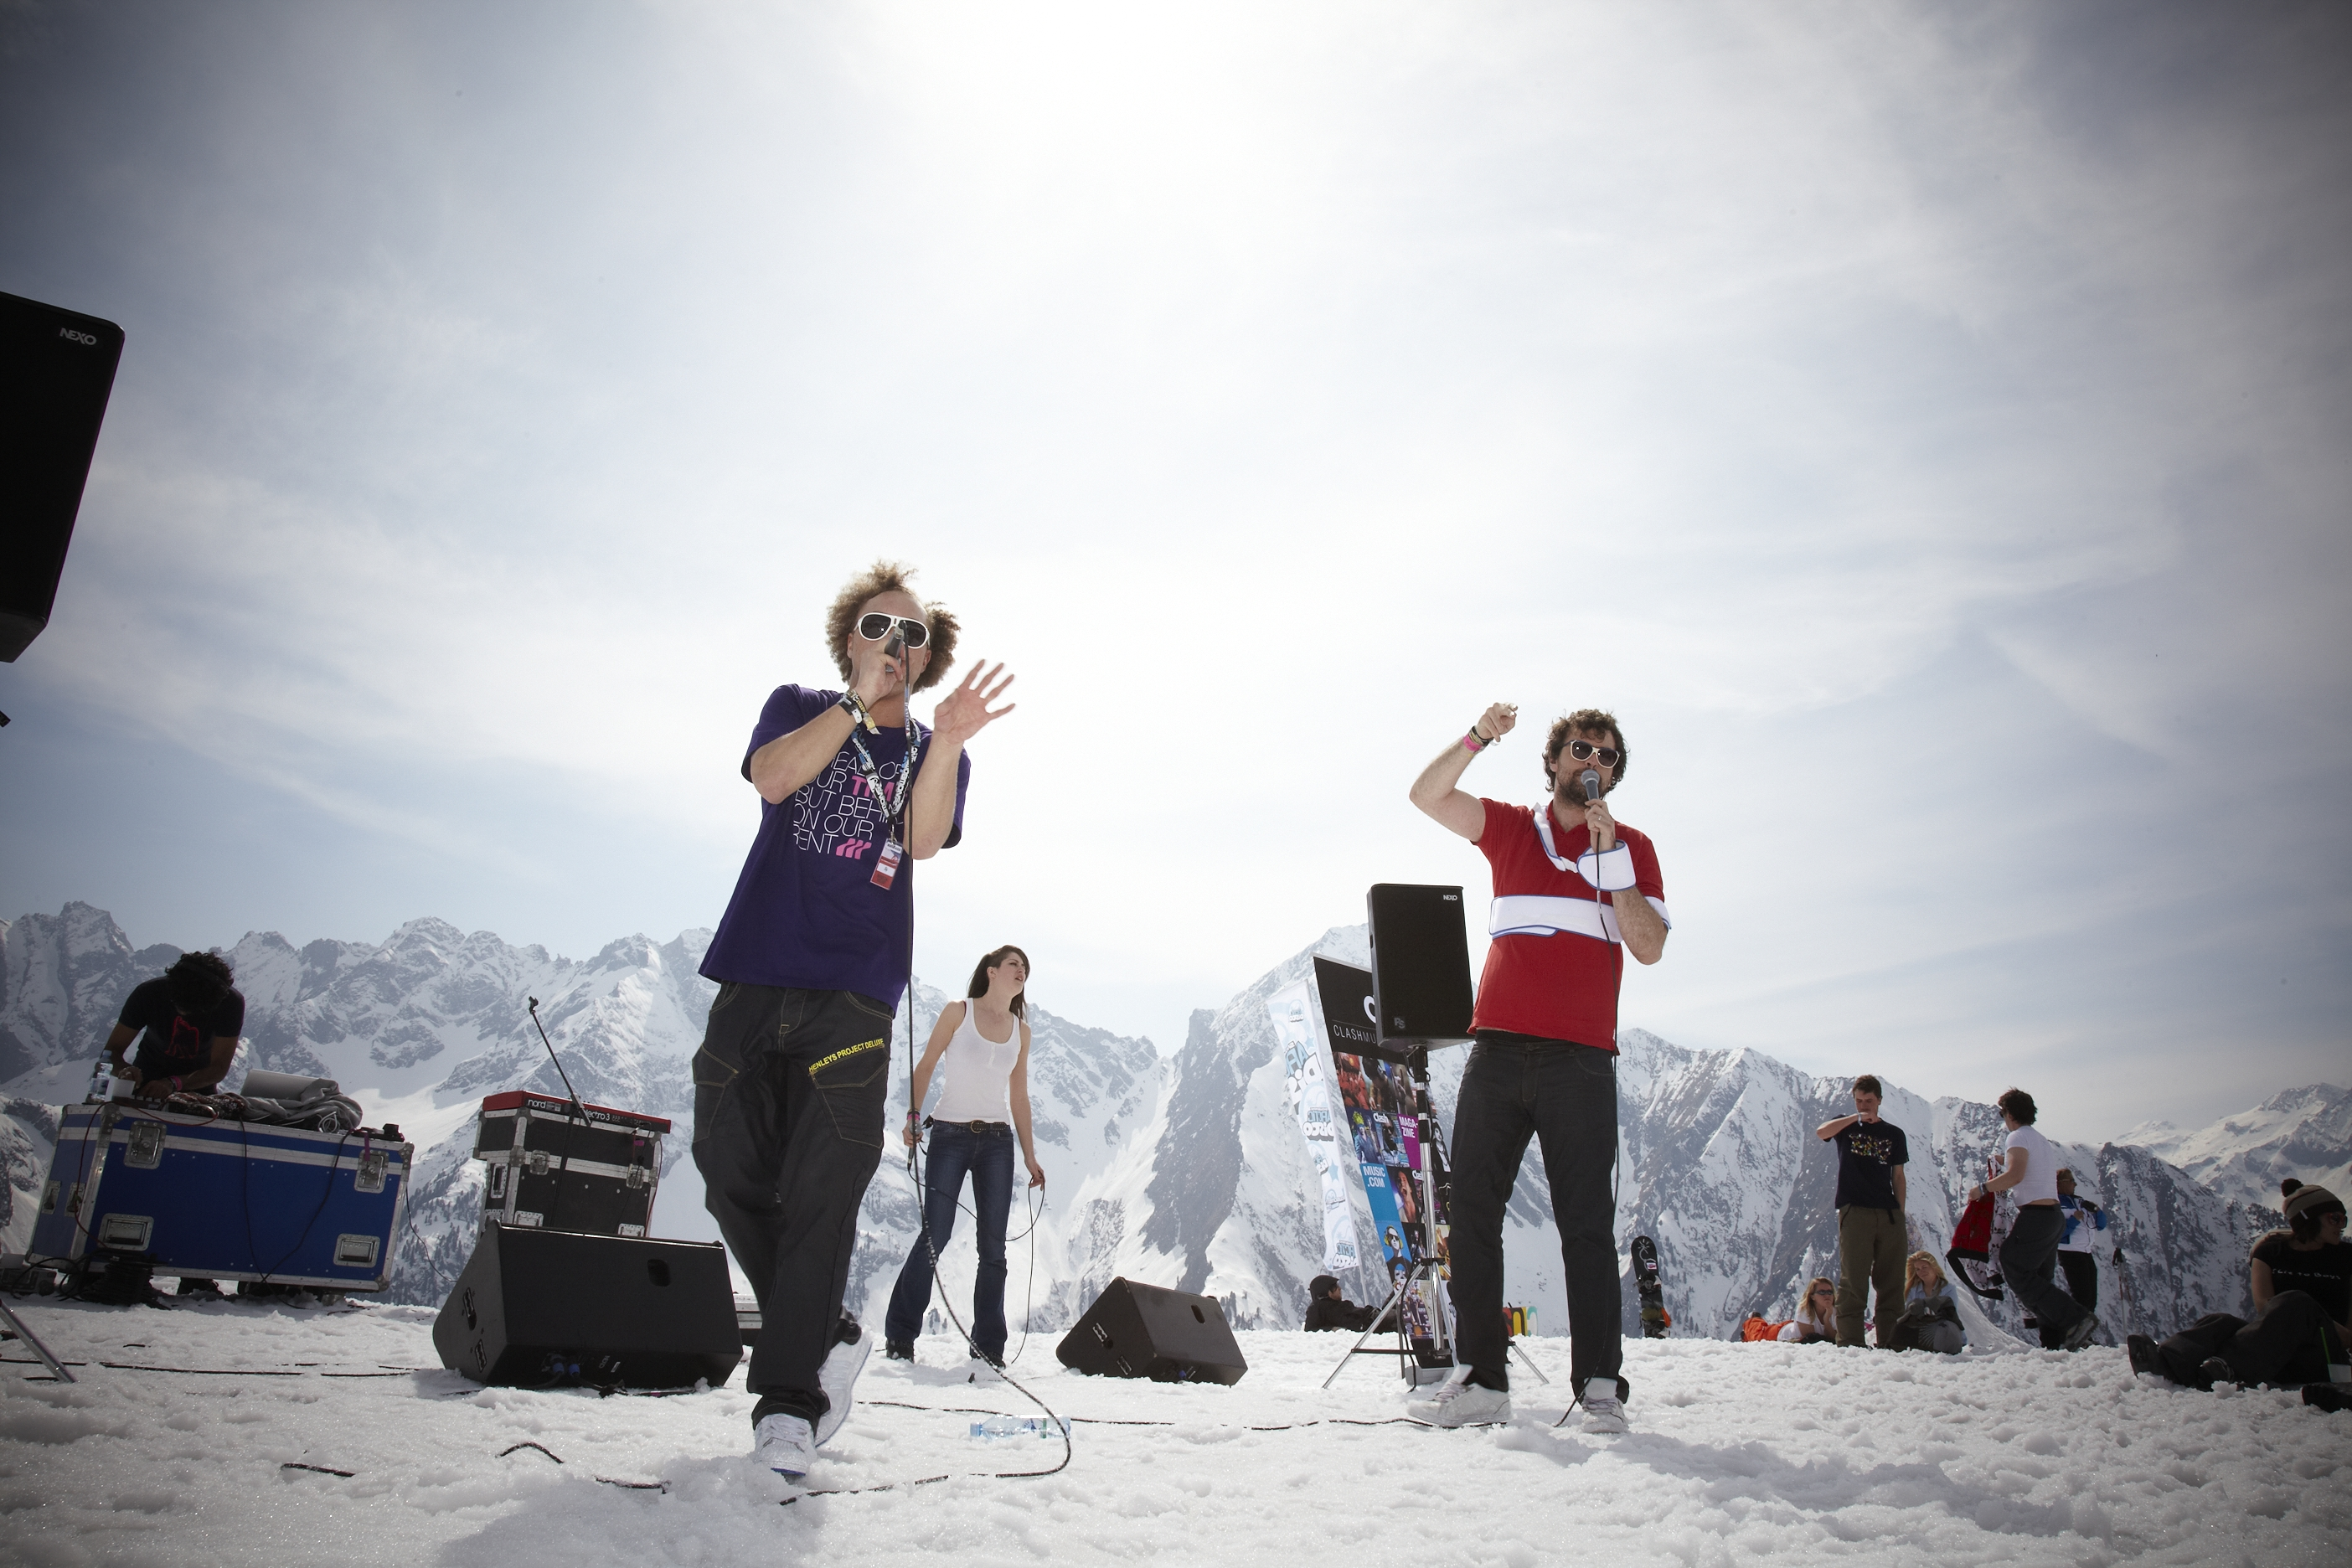 Bucket List: Snowbombing – Europeans Know How to Party